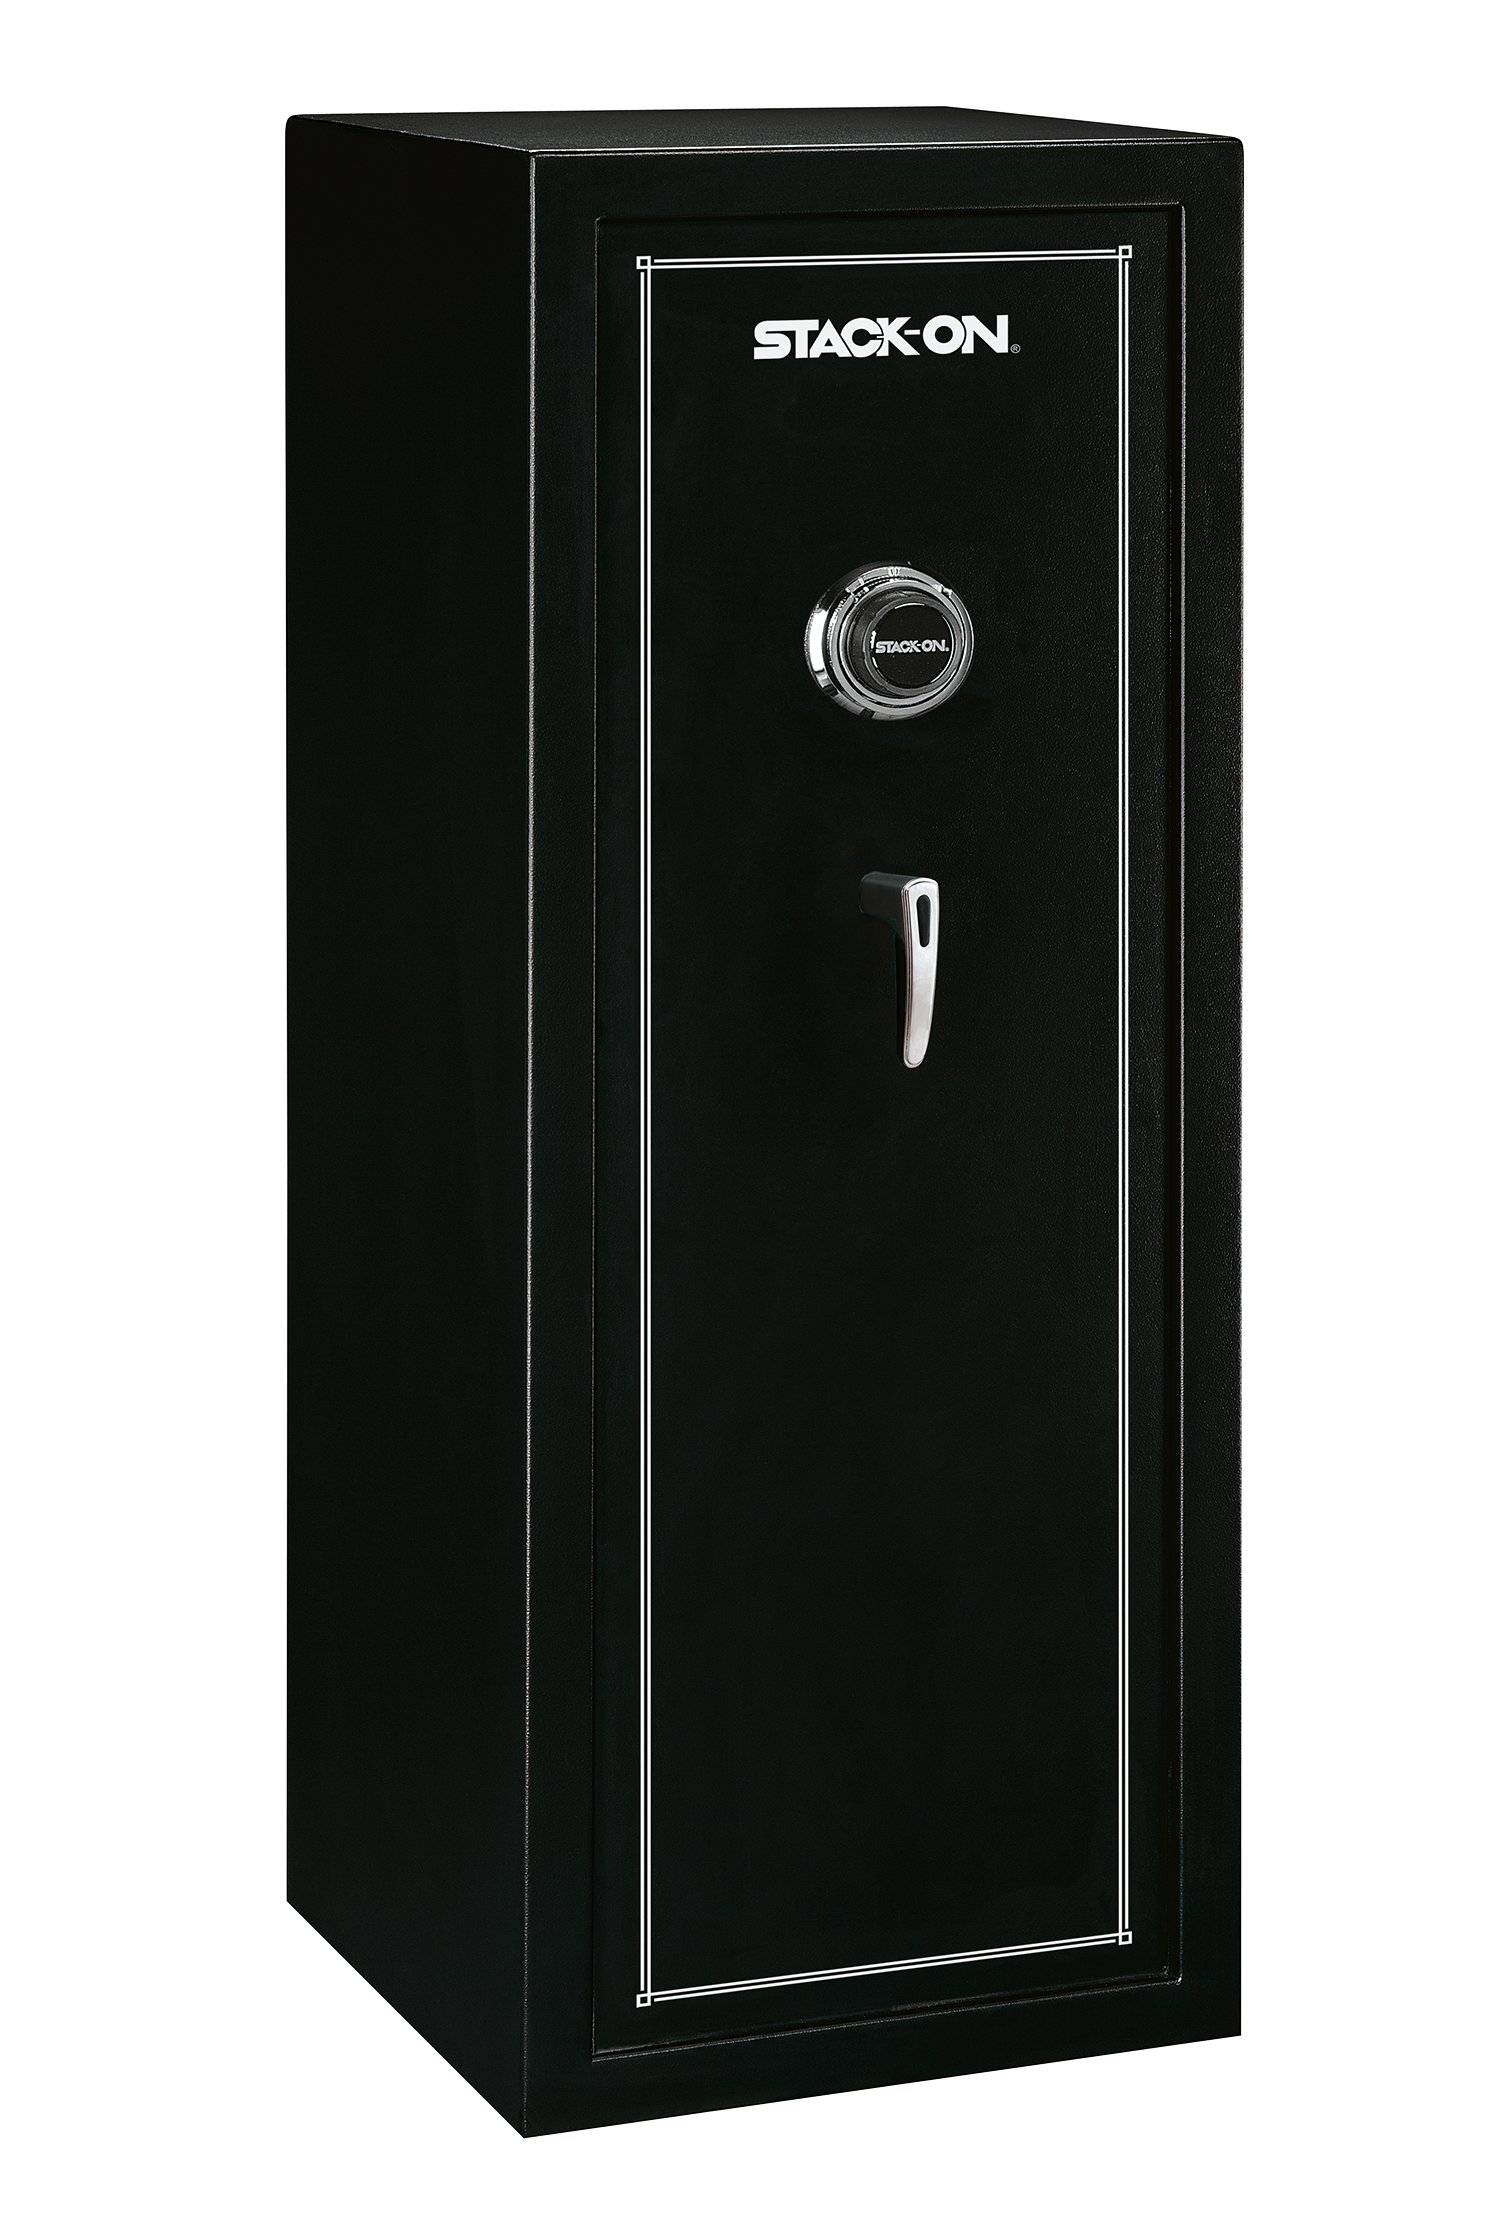 Stack-On SS-16-MB-C 16-Gun Security Safe with Combination Lock, Matte Black